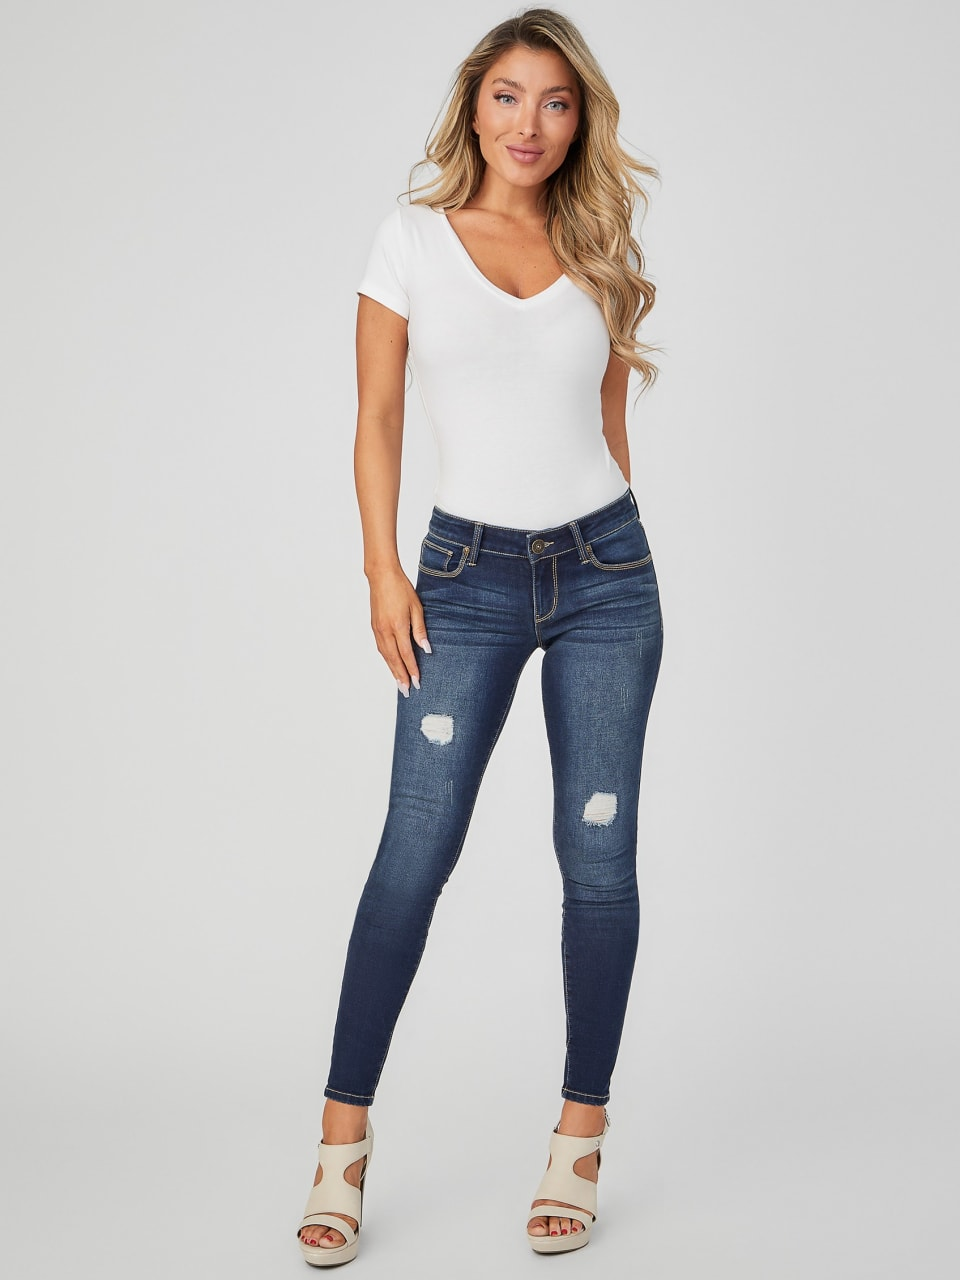 GUESS-Factory-Women-039-s-Sienna-Distressed-Curvy-Skinny-Jeans thumbnail 6